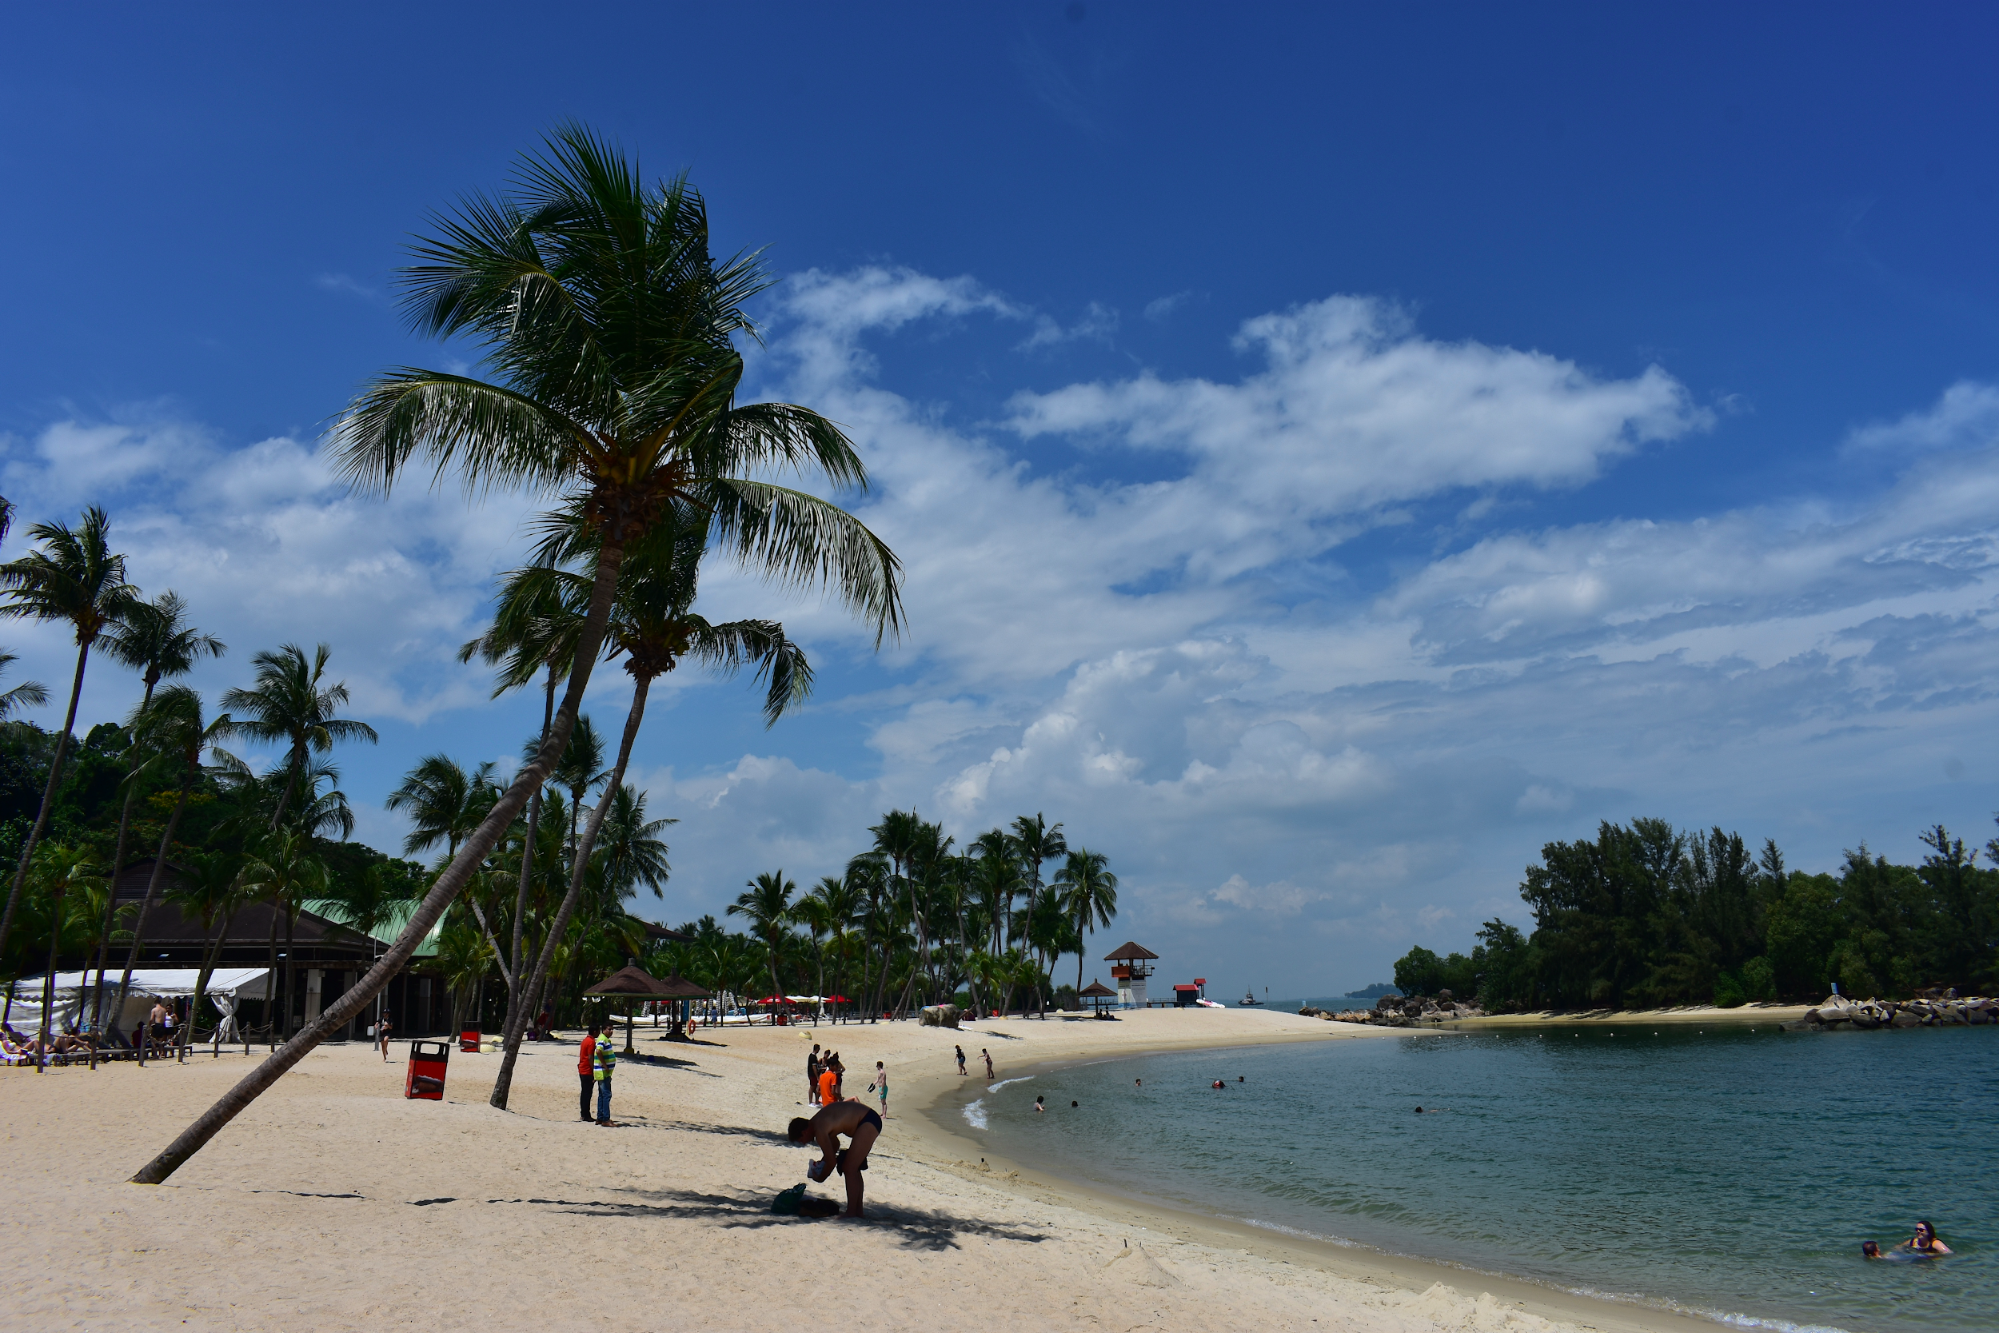 The beautiful island of Sentosa, only a few minutes (MRT, bus, car) from mainland Singapore